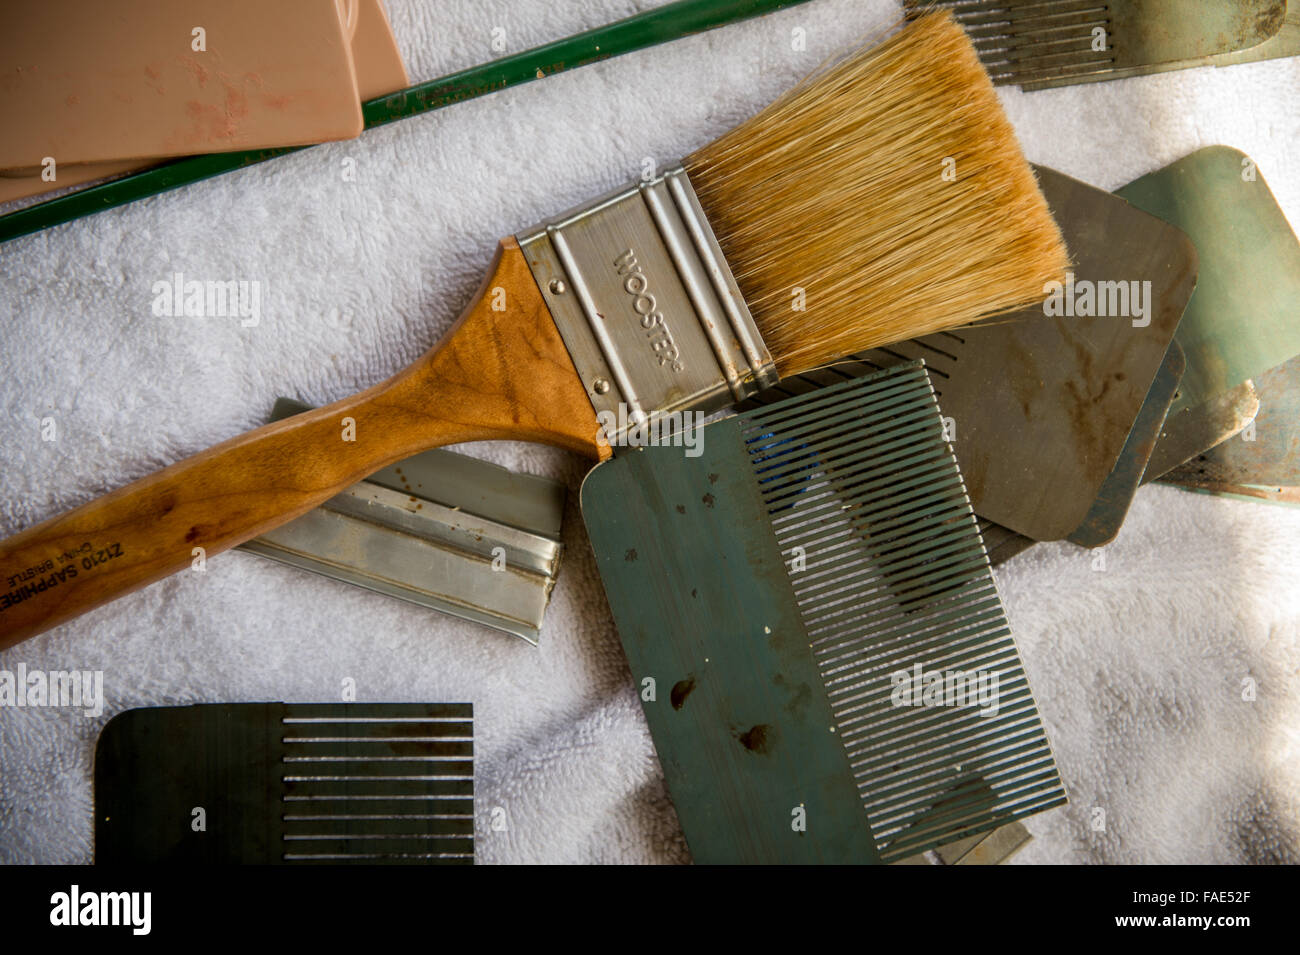 Tools Used For Wood Graining Stock Photo Alamy